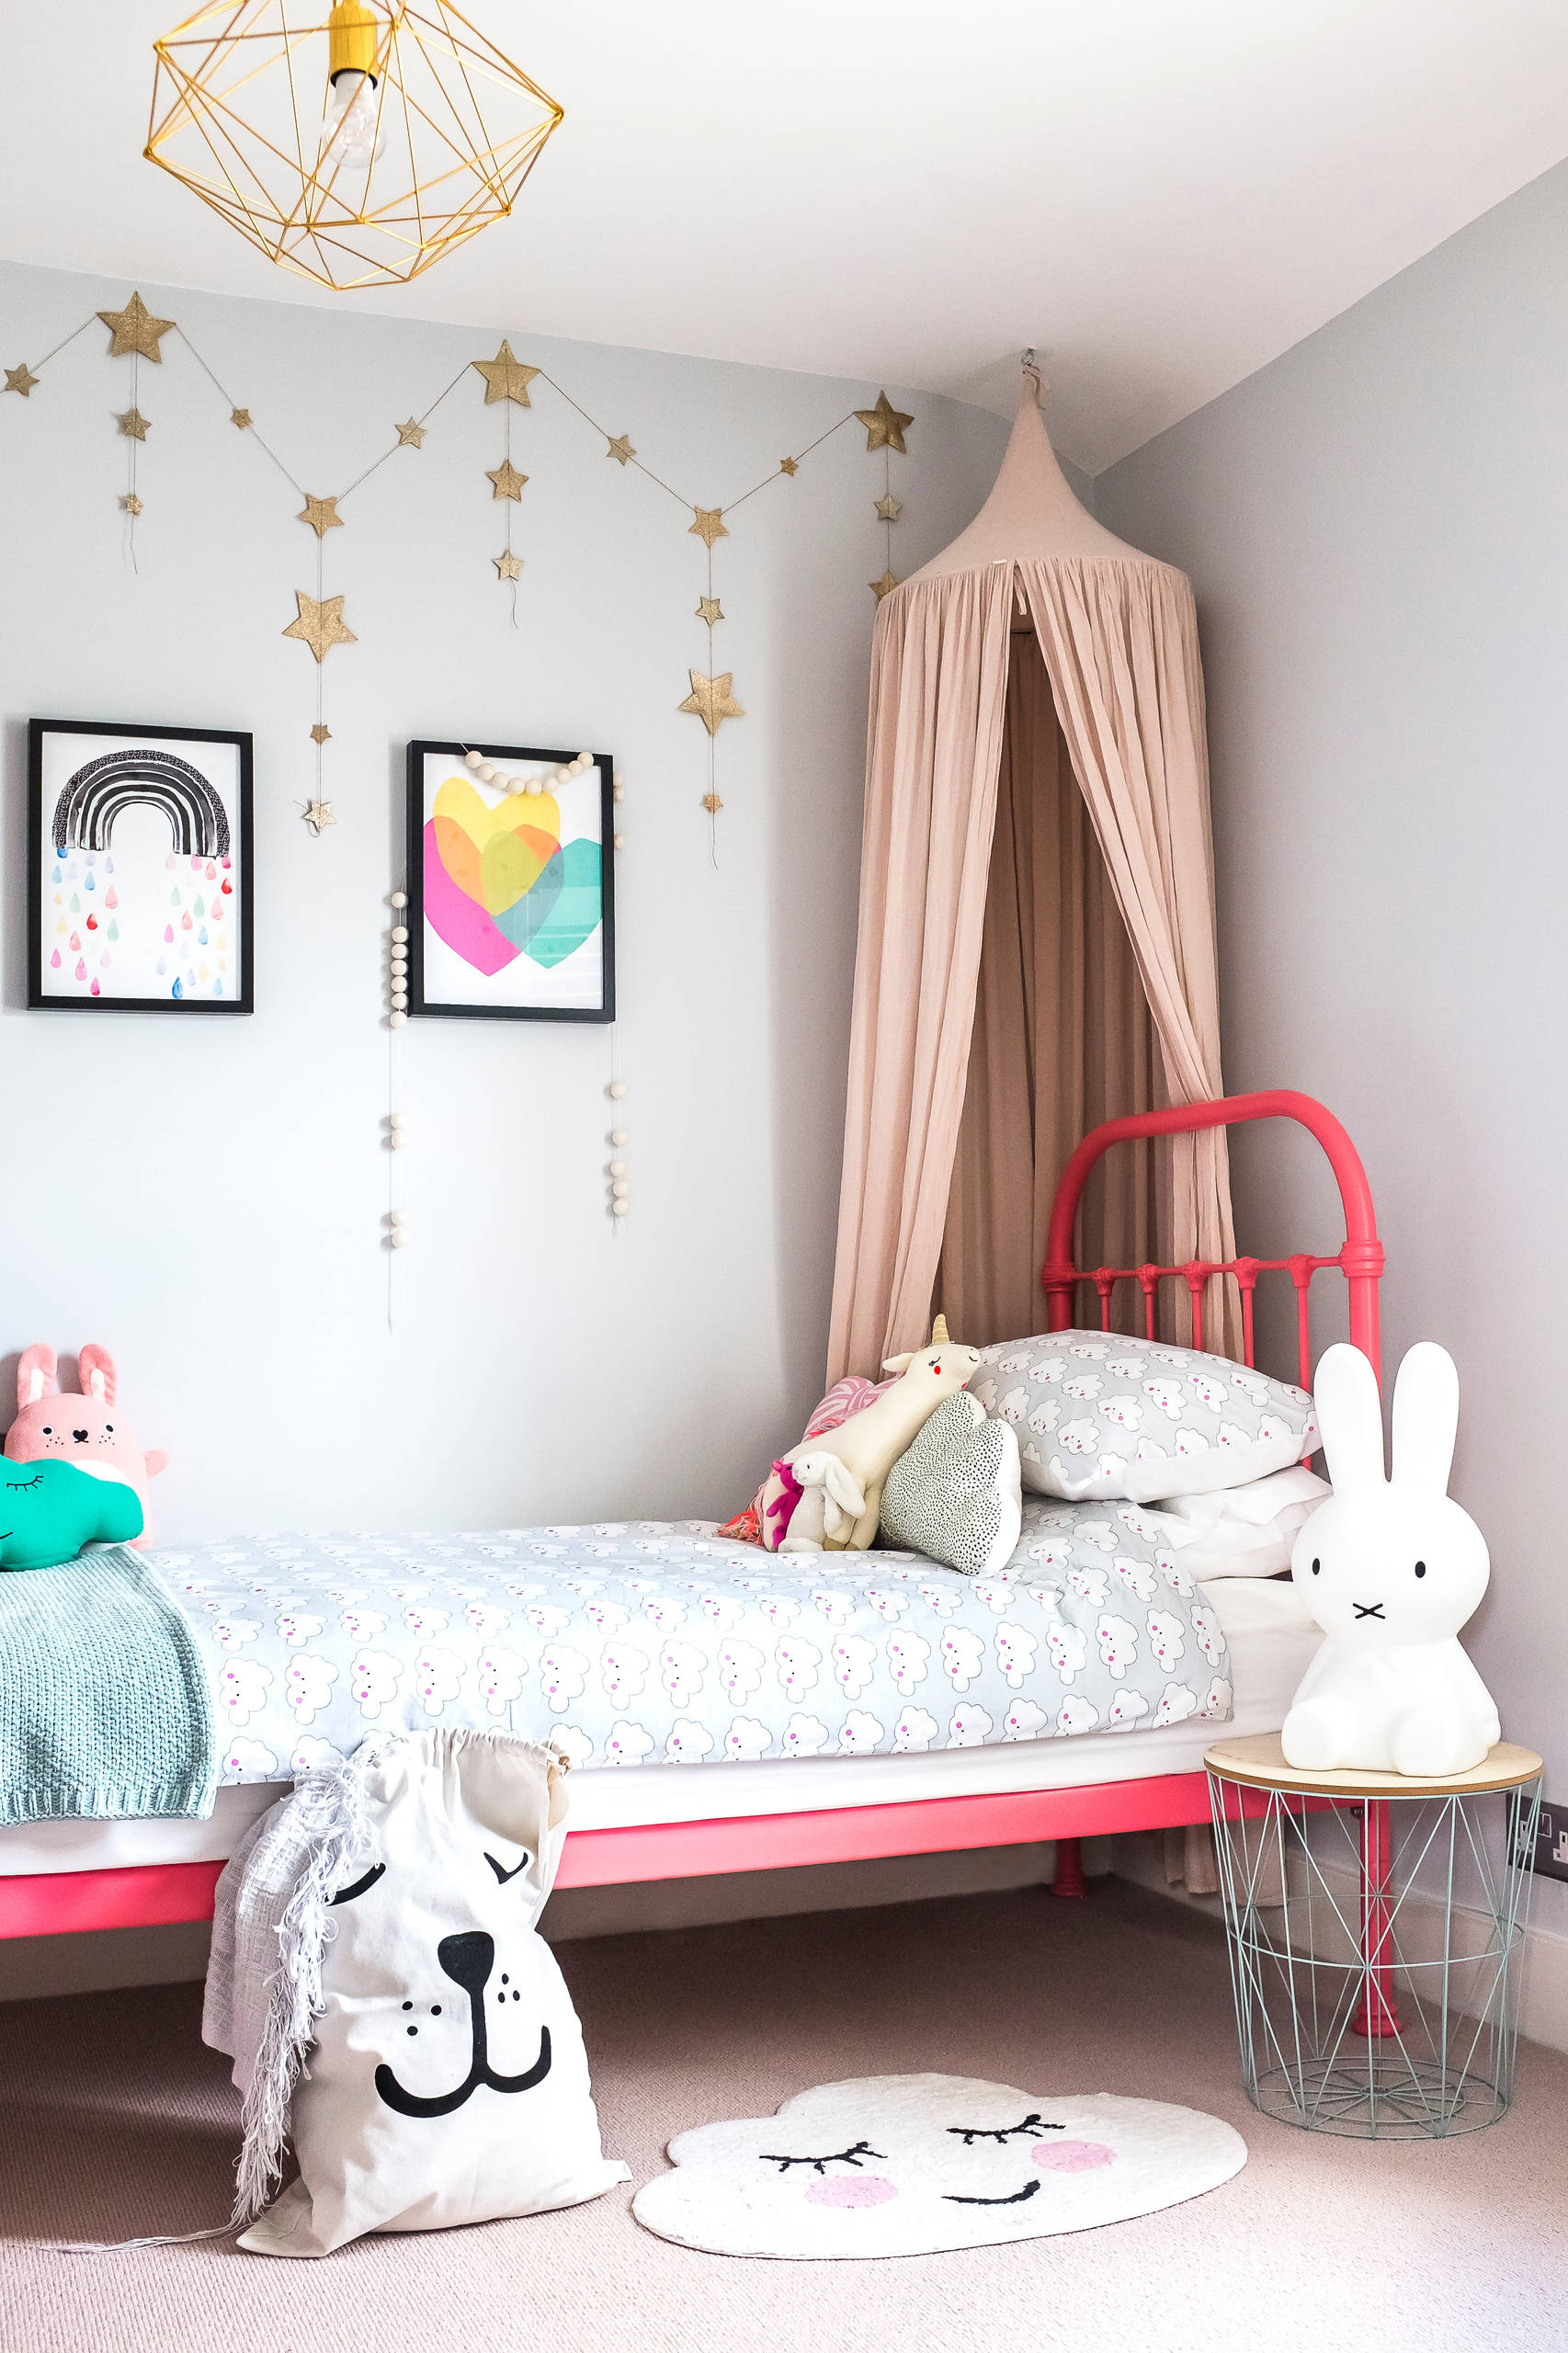 Baby Girl Room: 17 Delightful Eclectic Kids' Room Designs With A Cozy Look